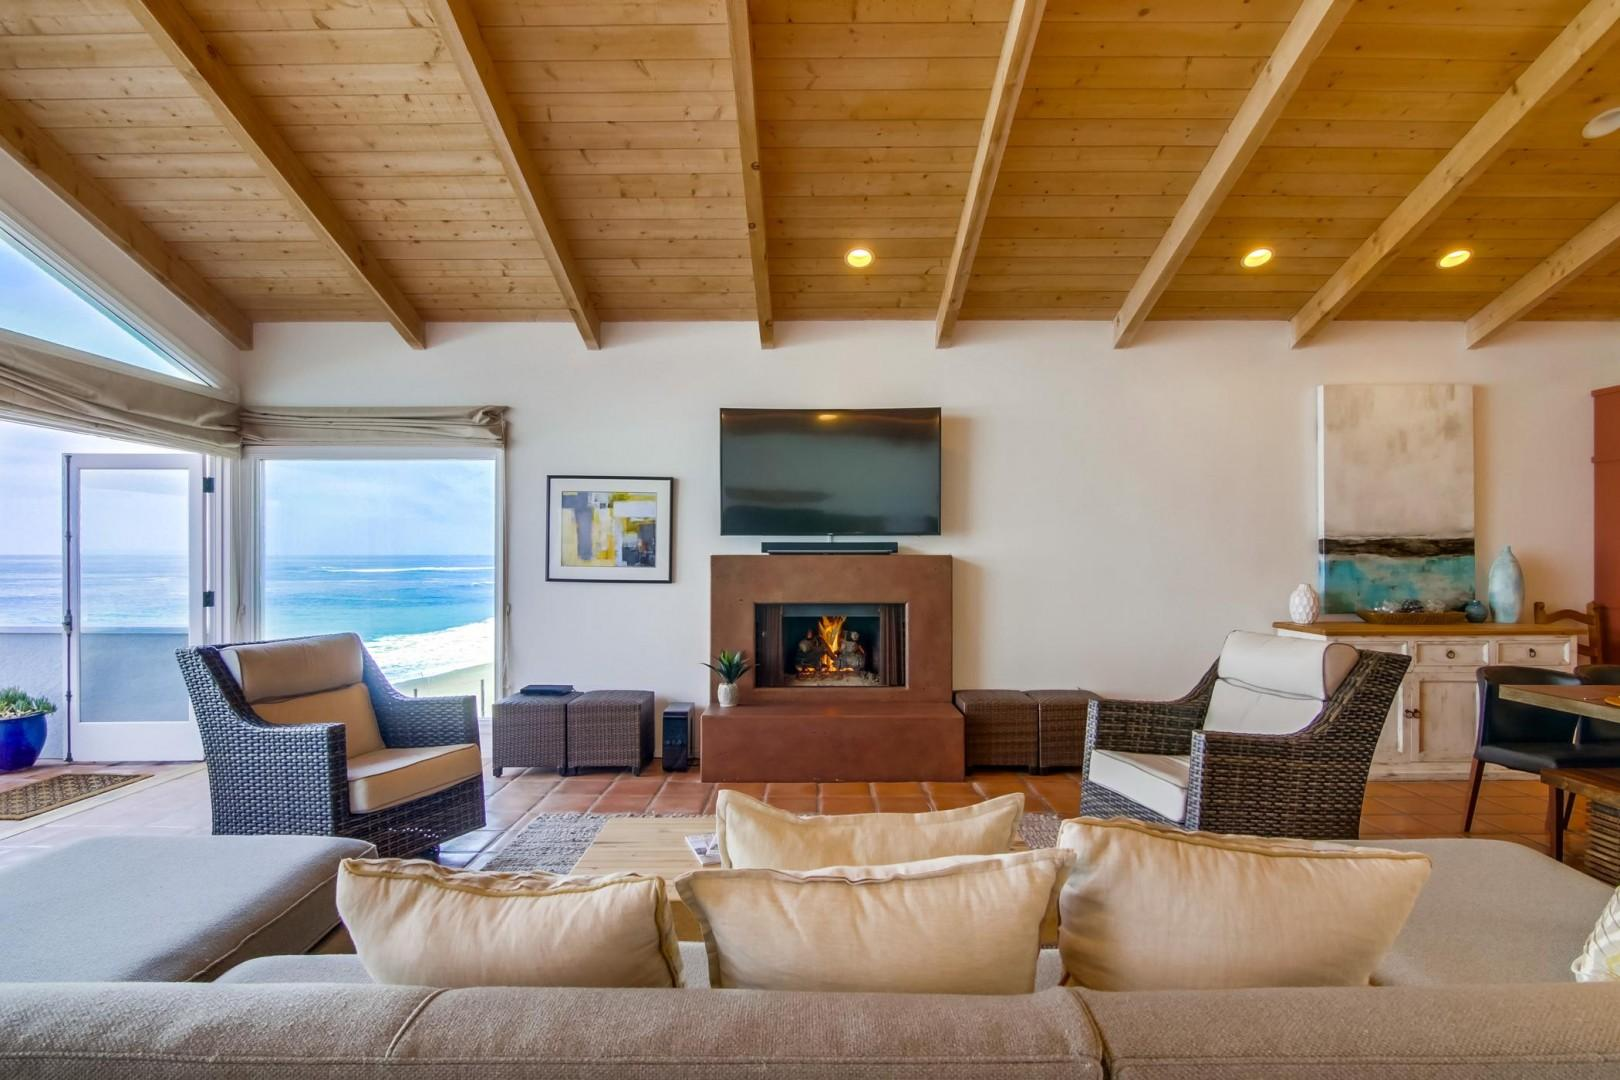 Fireplace and flat-screen TV features